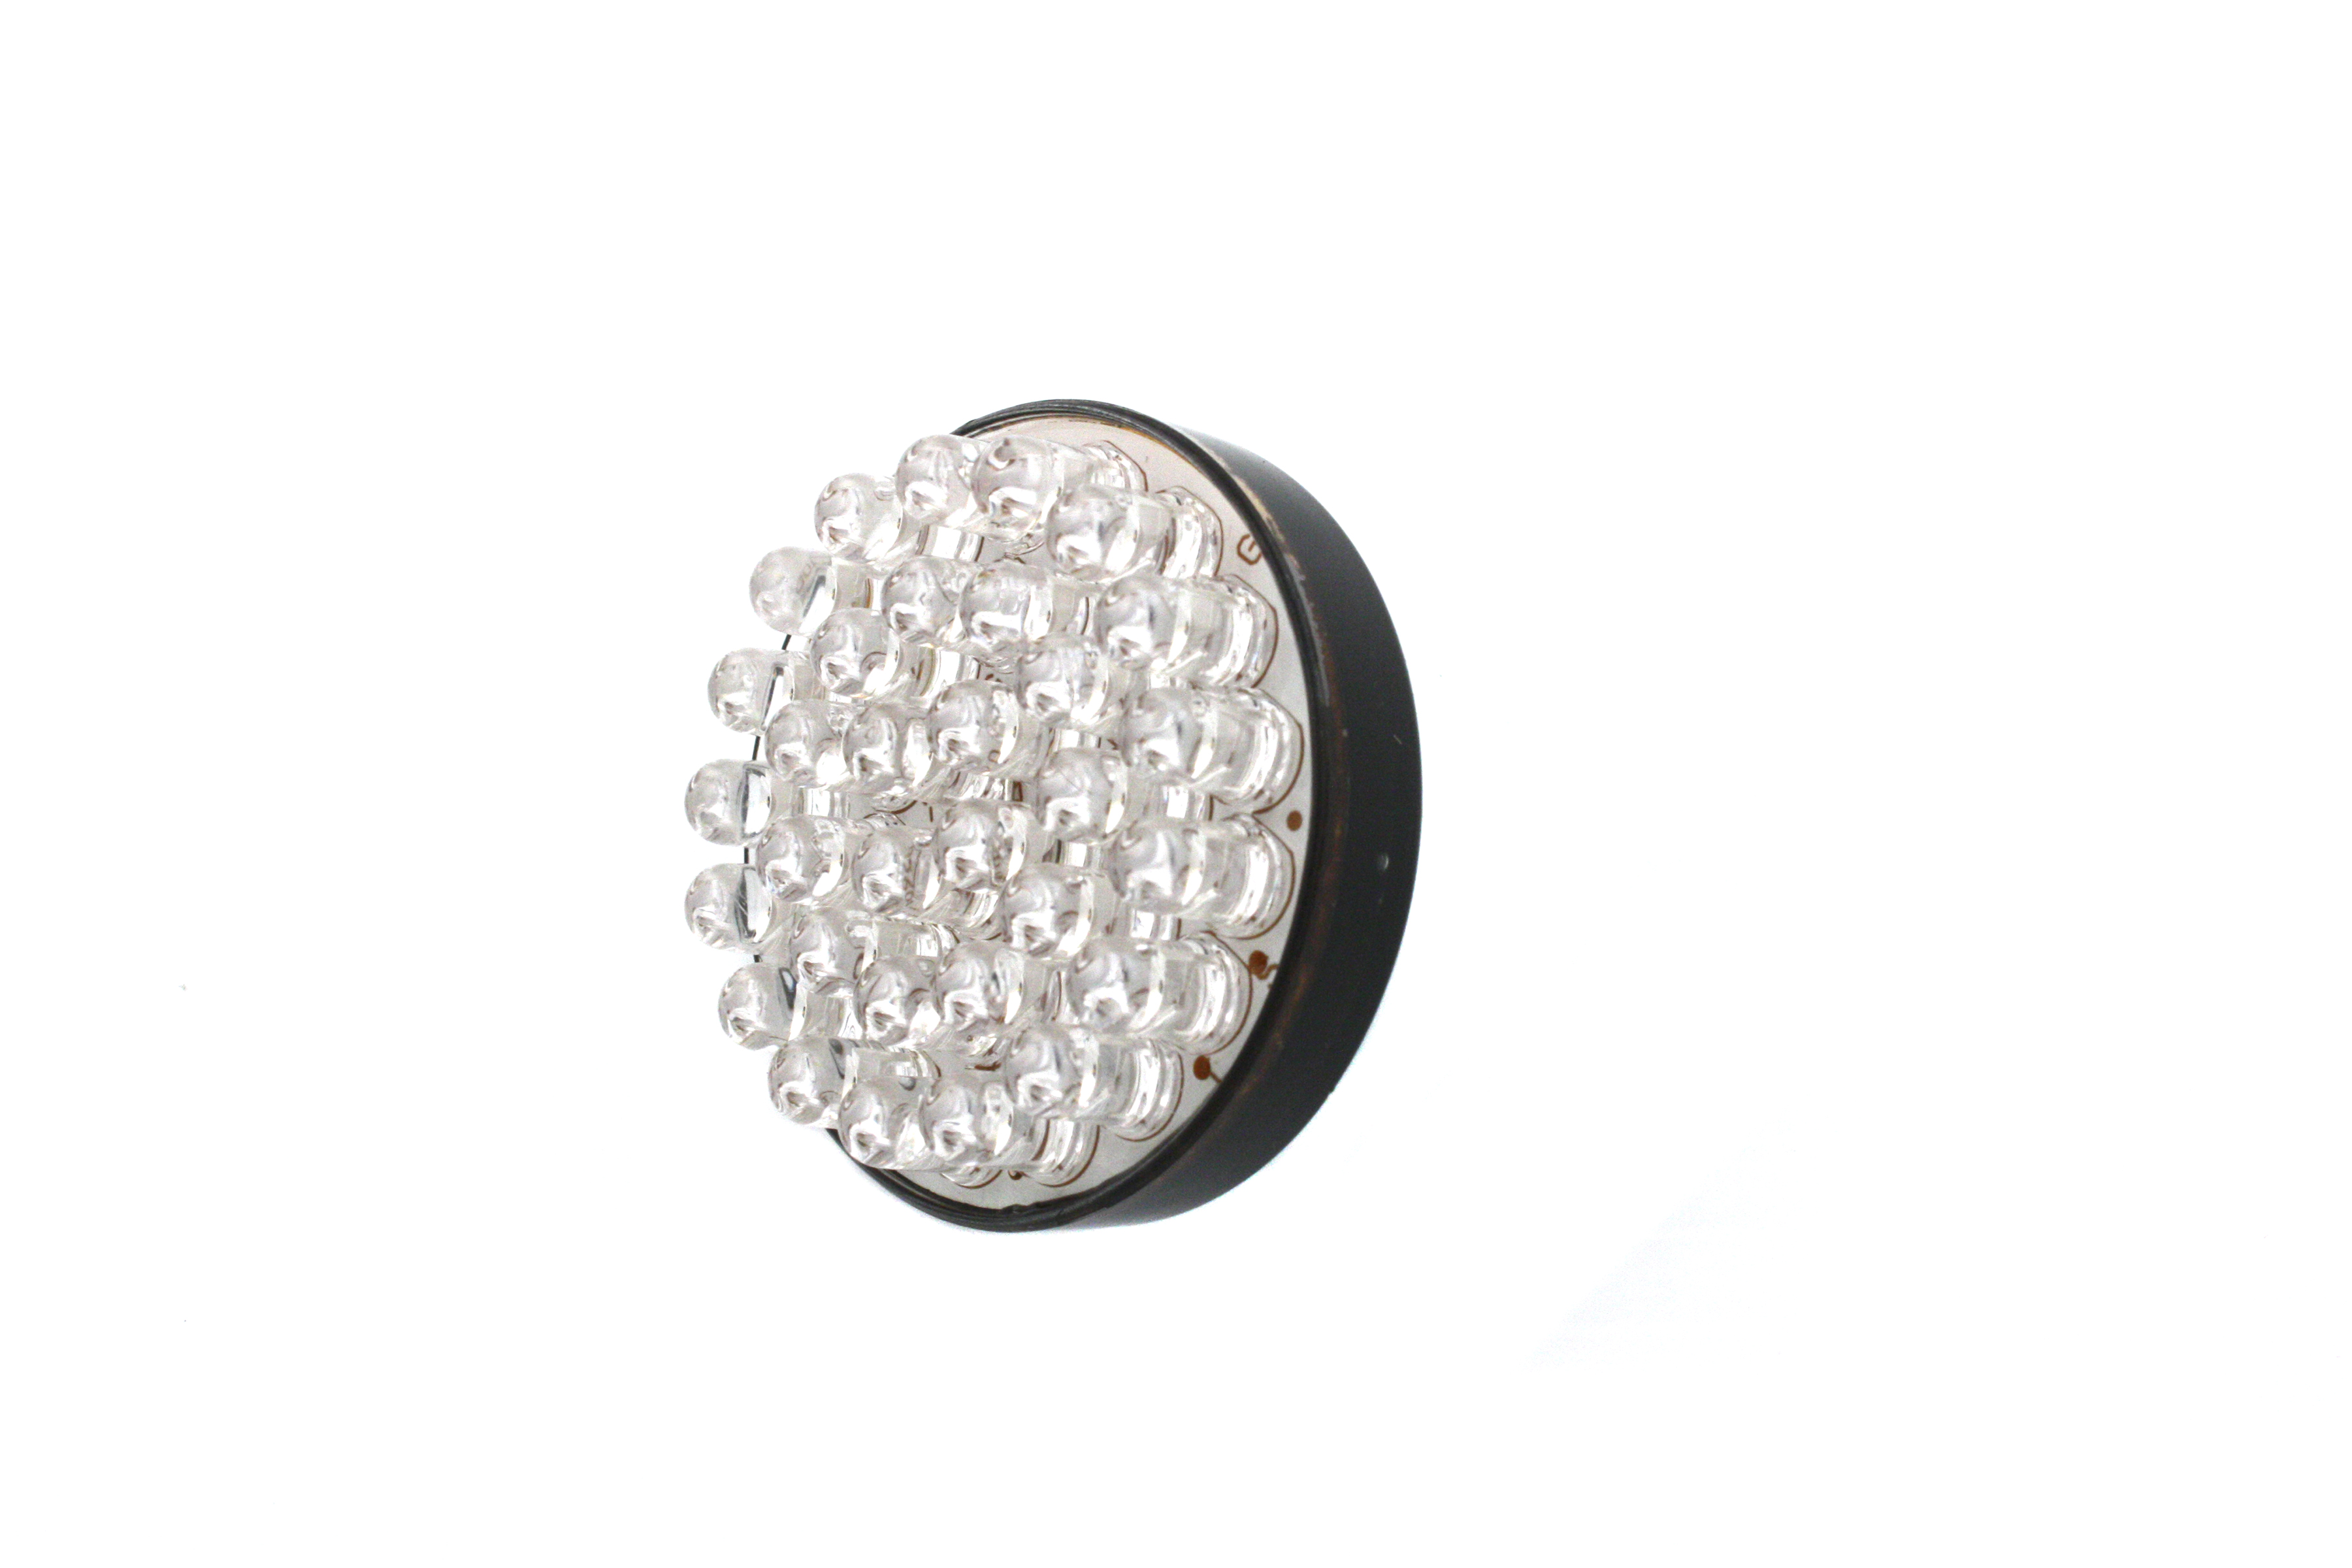 Red Flat Style Bulb for Tail Lamp